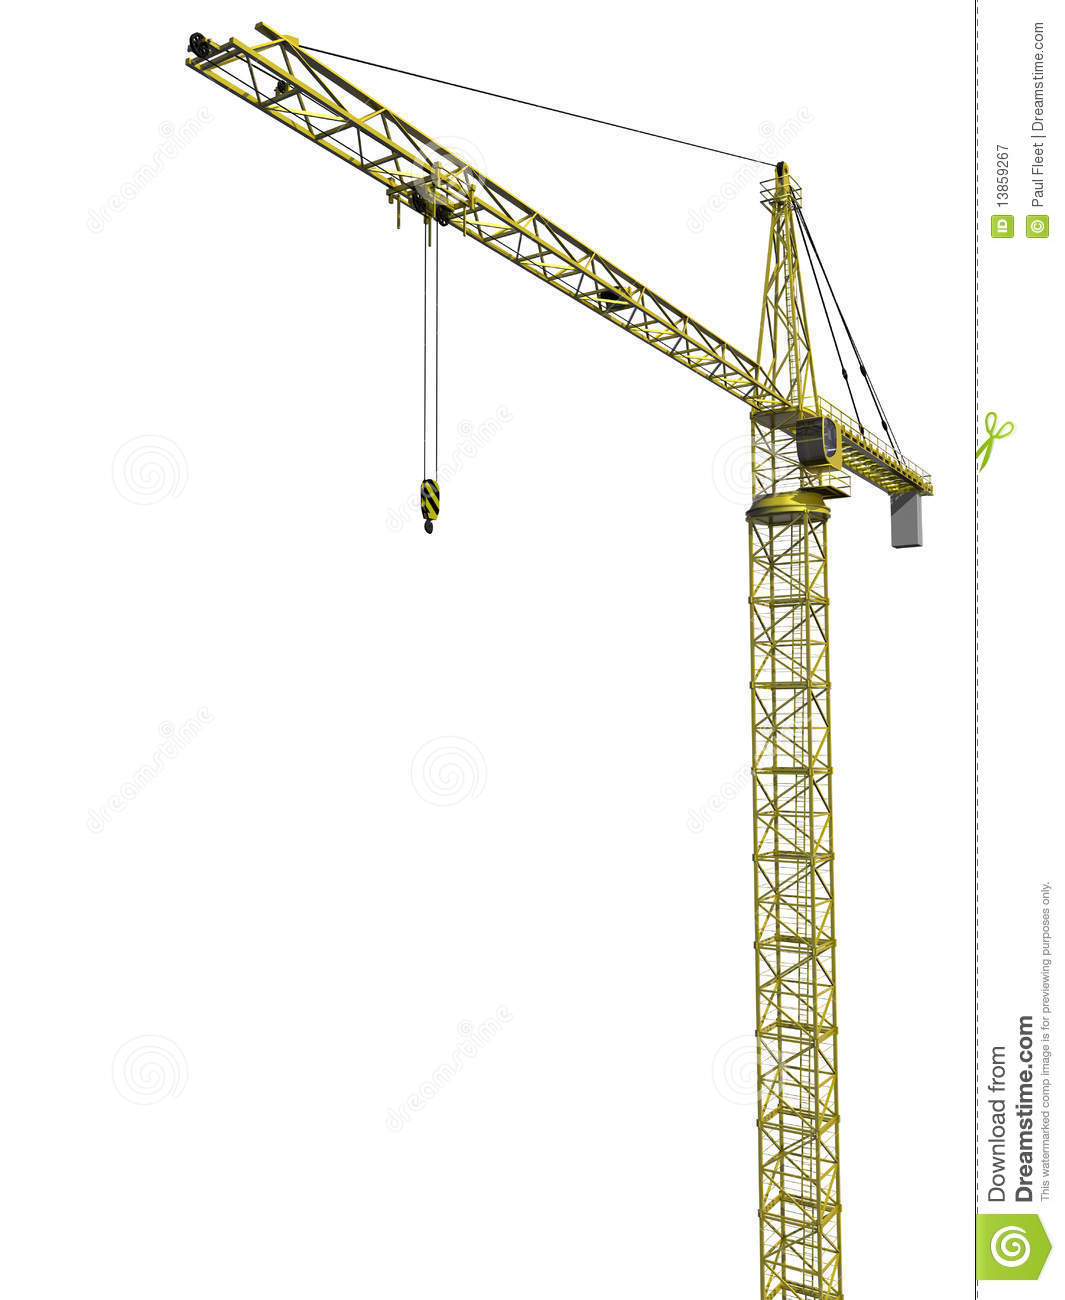 Tower crane clipart.